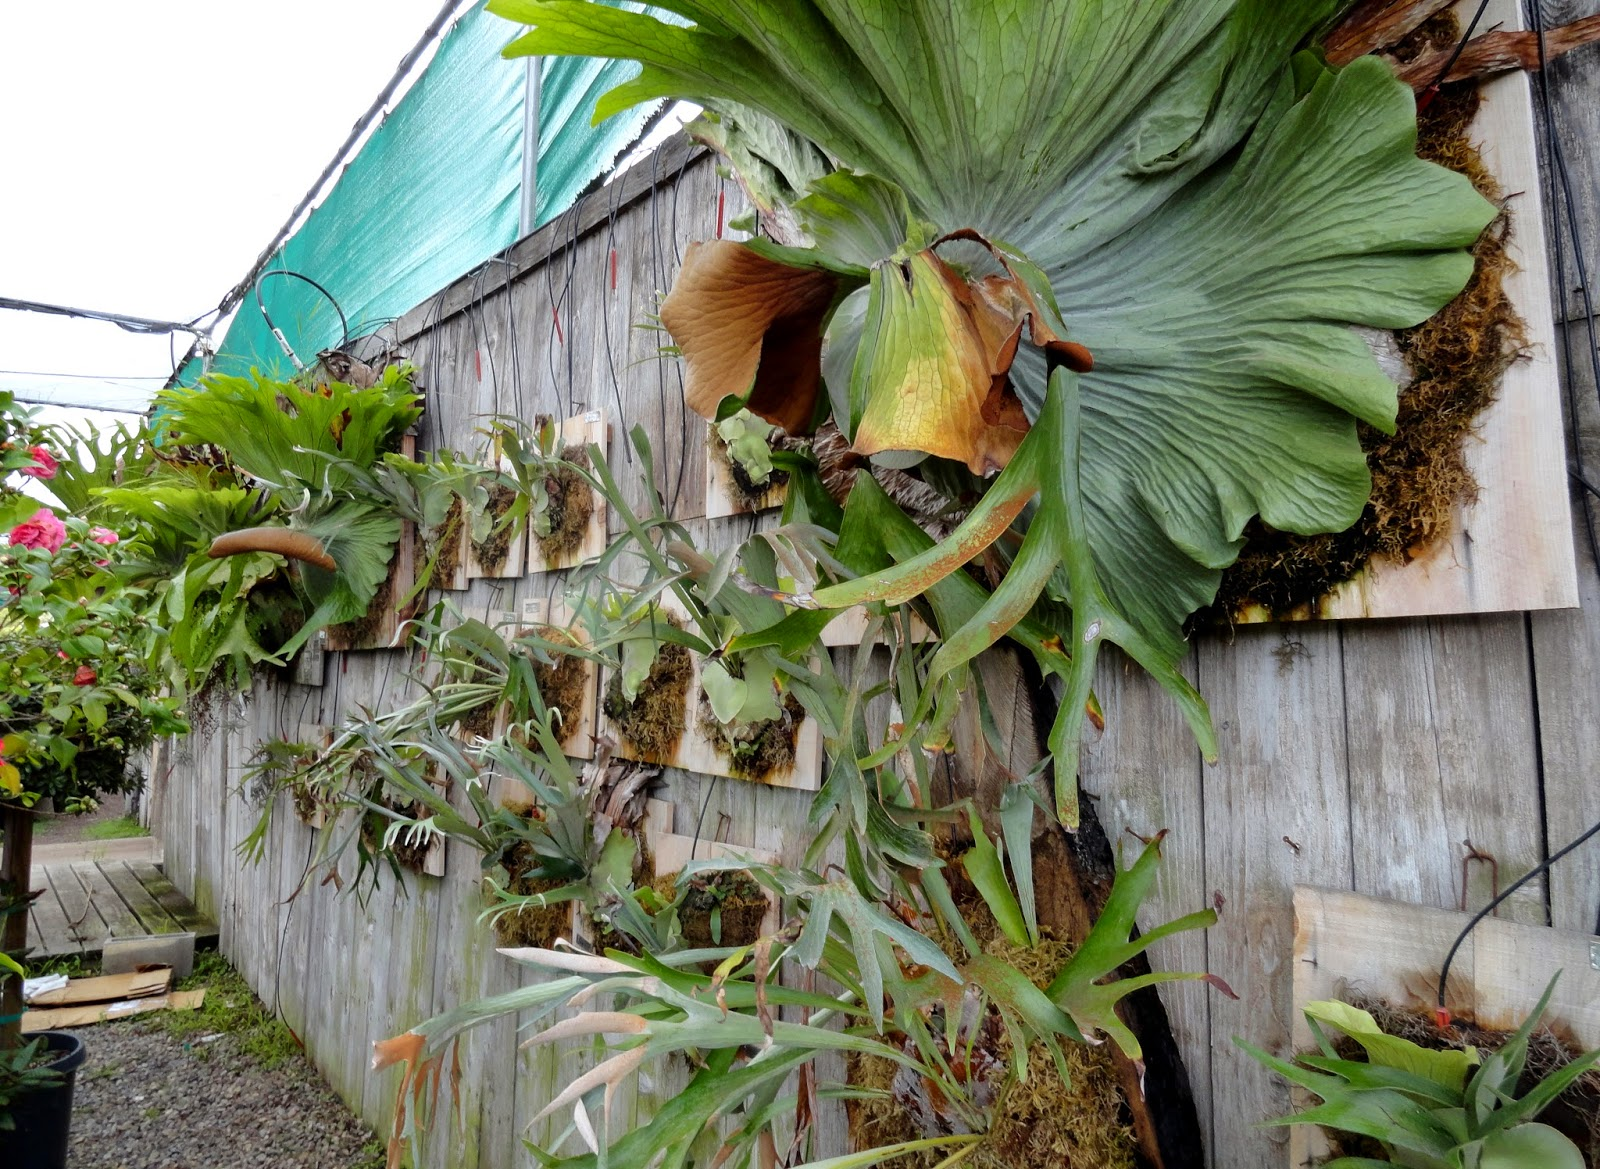 I M Still Not In Love With The Staghorn Ferns